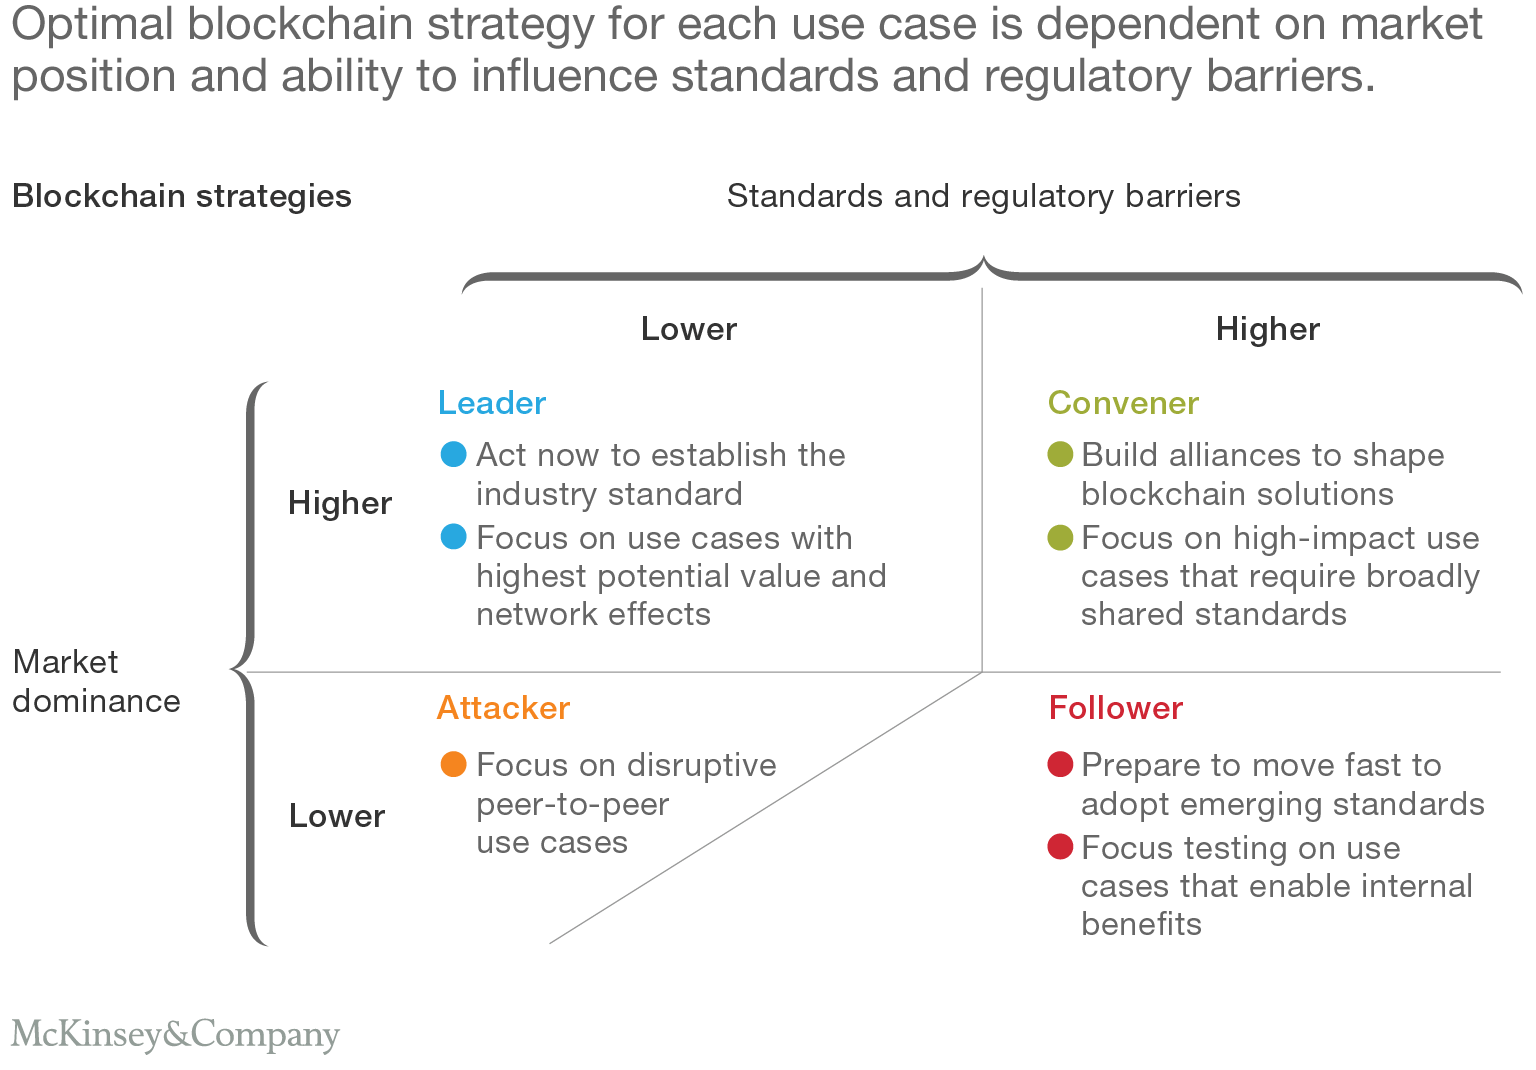 Optimal blockchain strategy for each use case is dependent on market position and ability to influence standards and regulatory barriers.